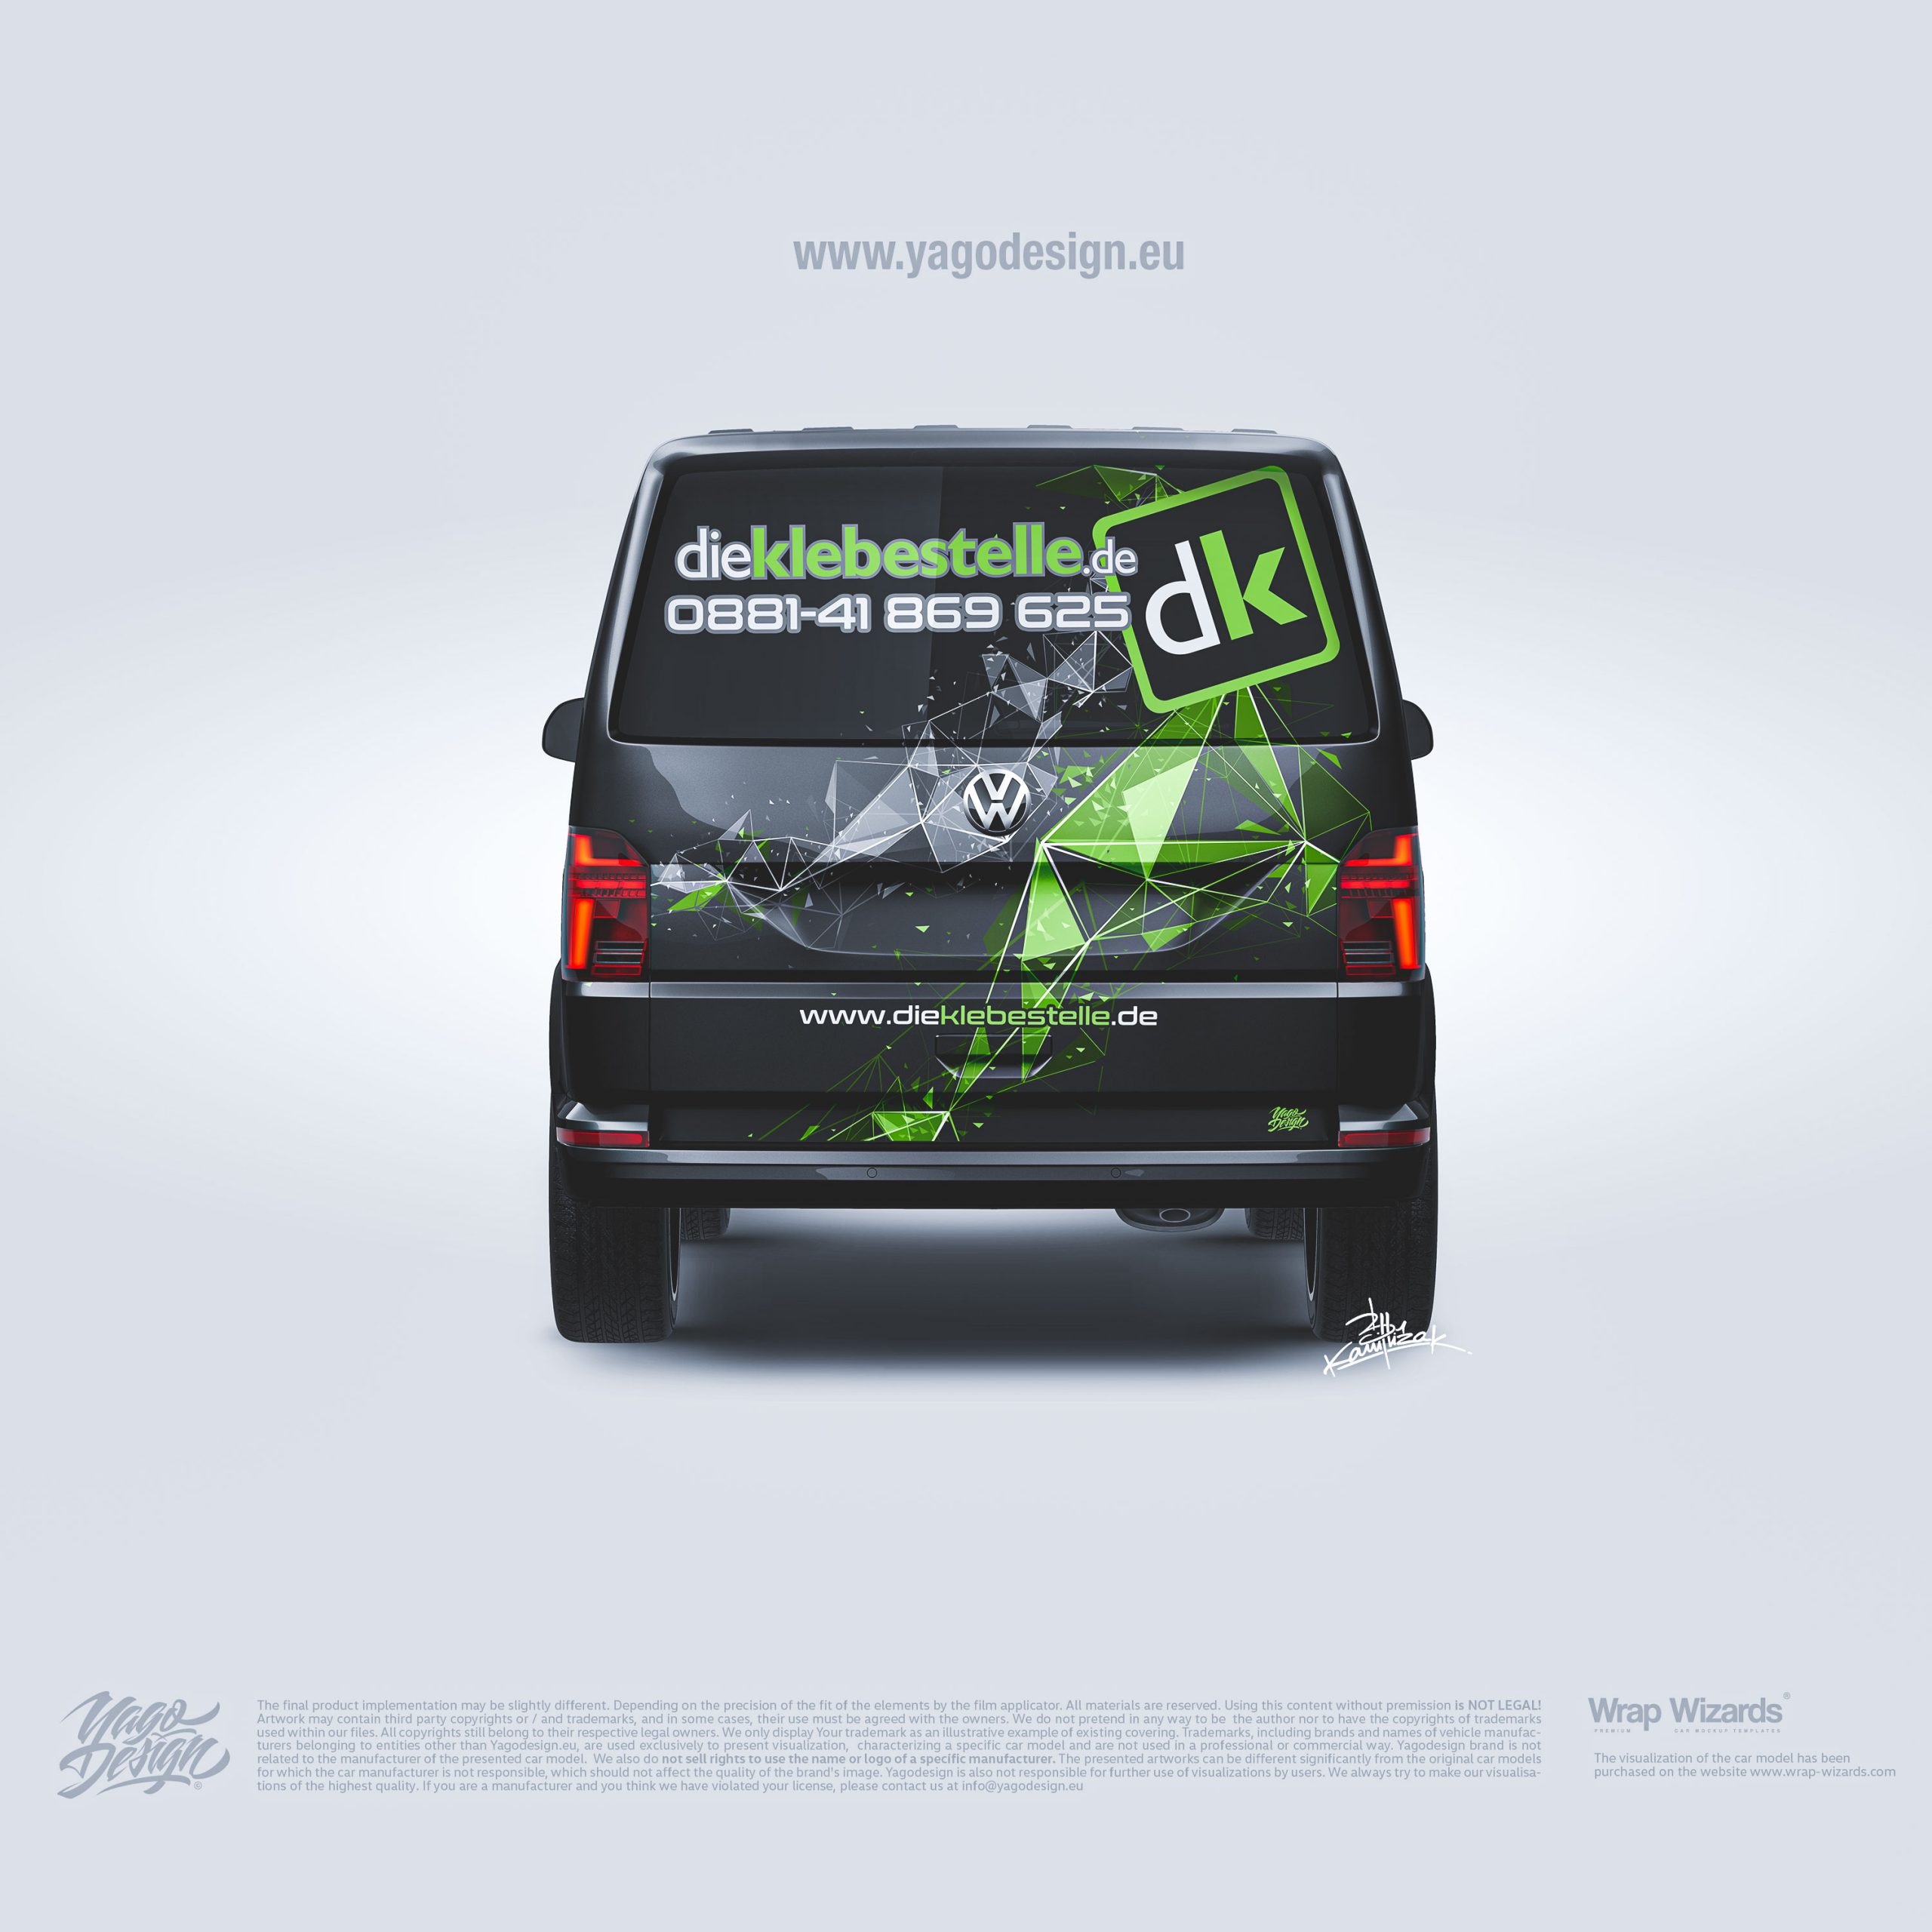 Volkswagen-Transporter-T61-by-Yagodesign–Atuomotive-Design-Studio-3-rear-view